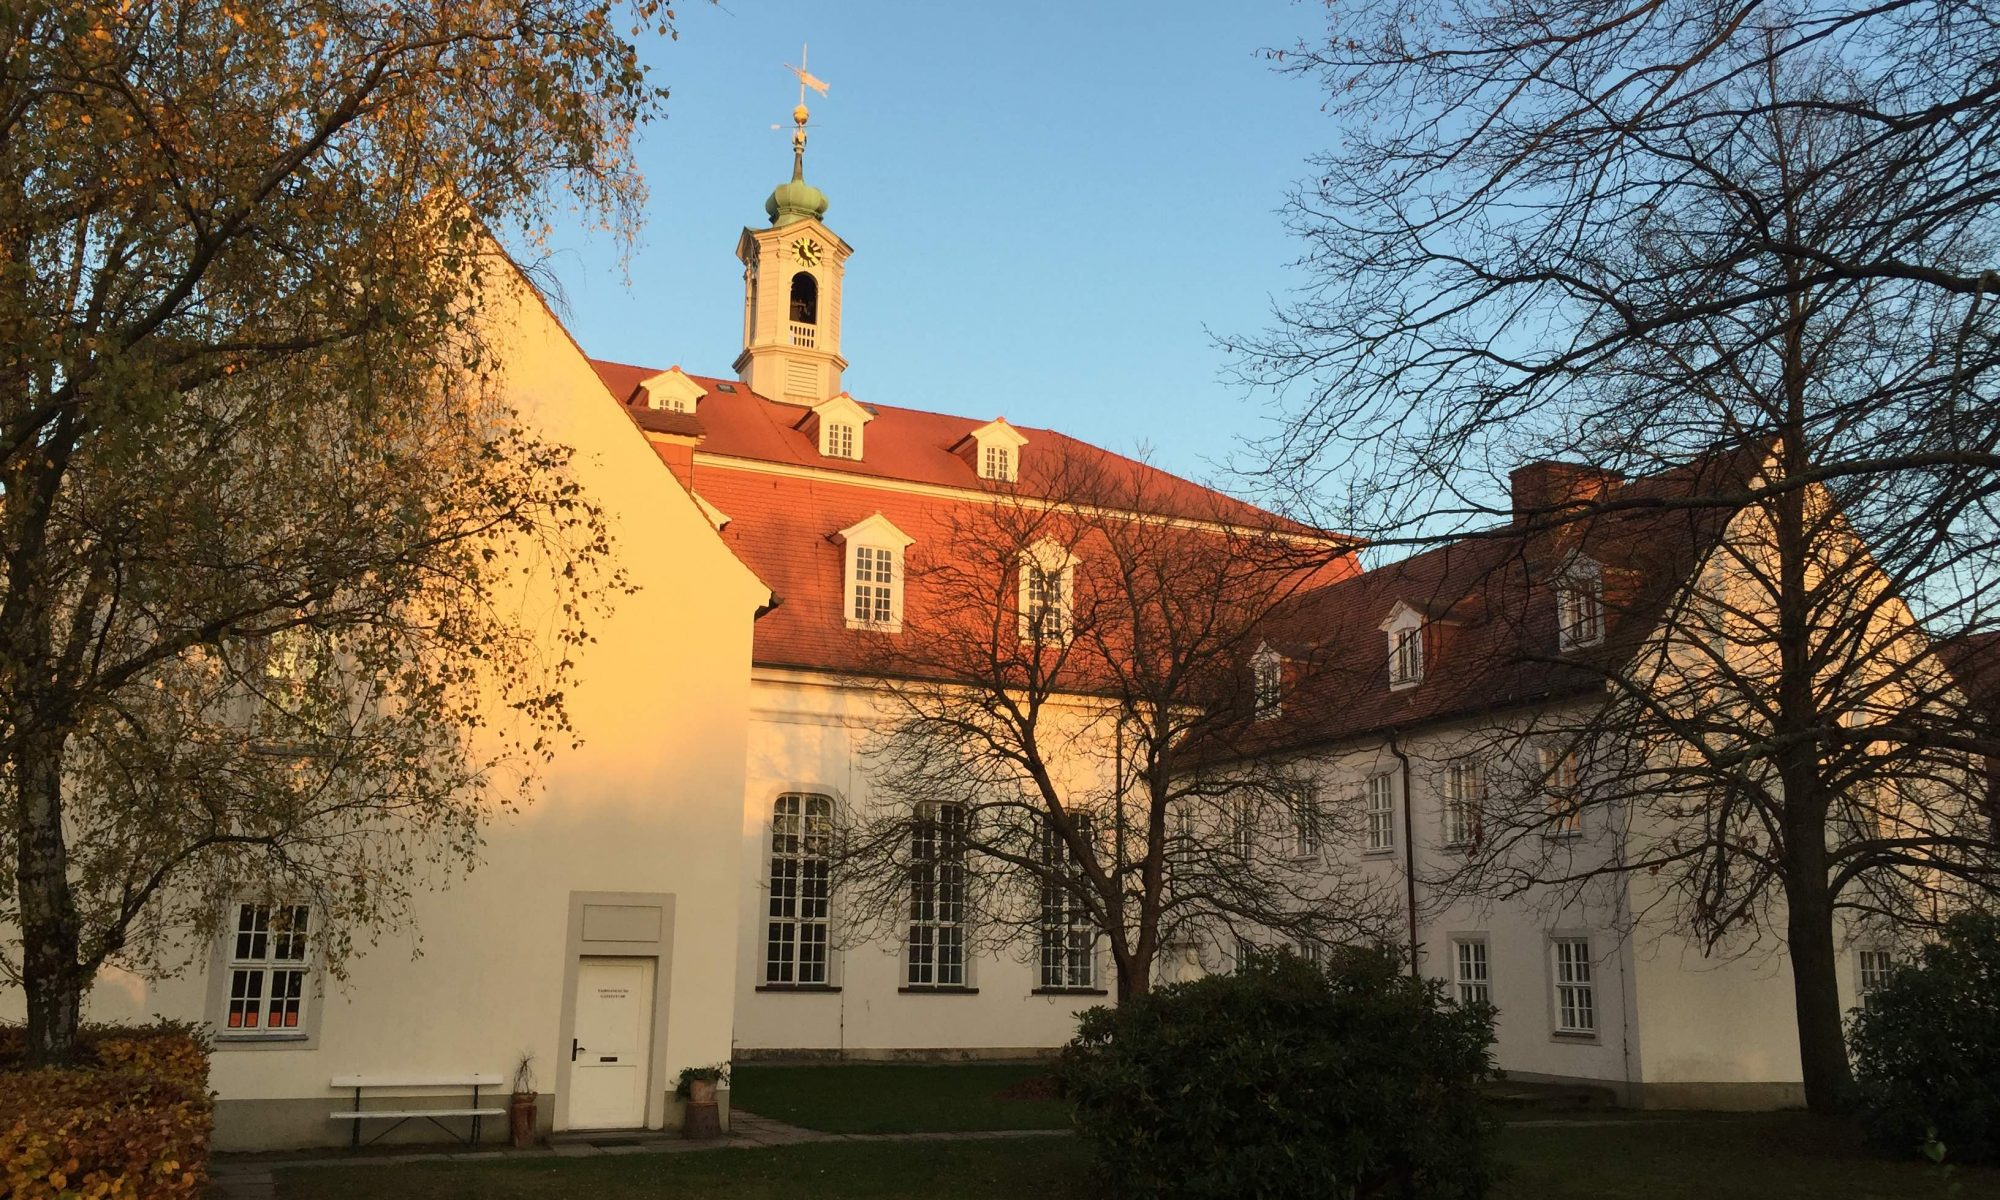 Moravian Church, Herrnhut